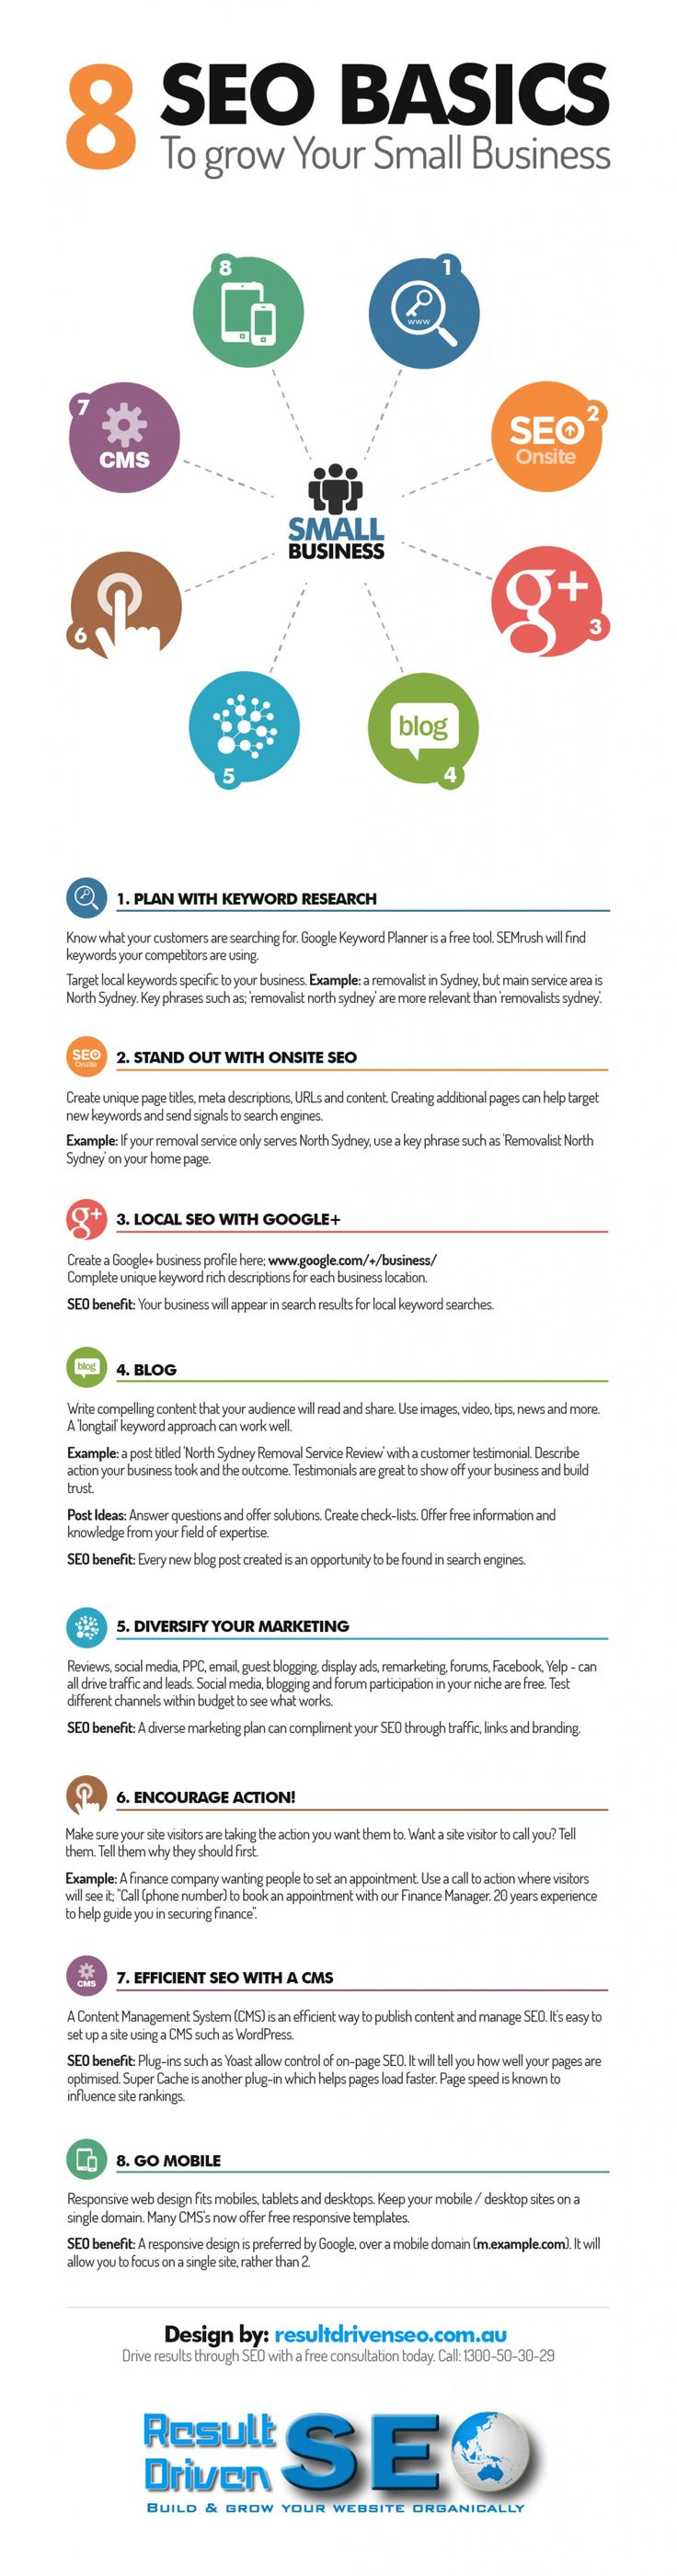 8 #SEO Basics To Grow Your Small Business Infographic | Propel Marketing